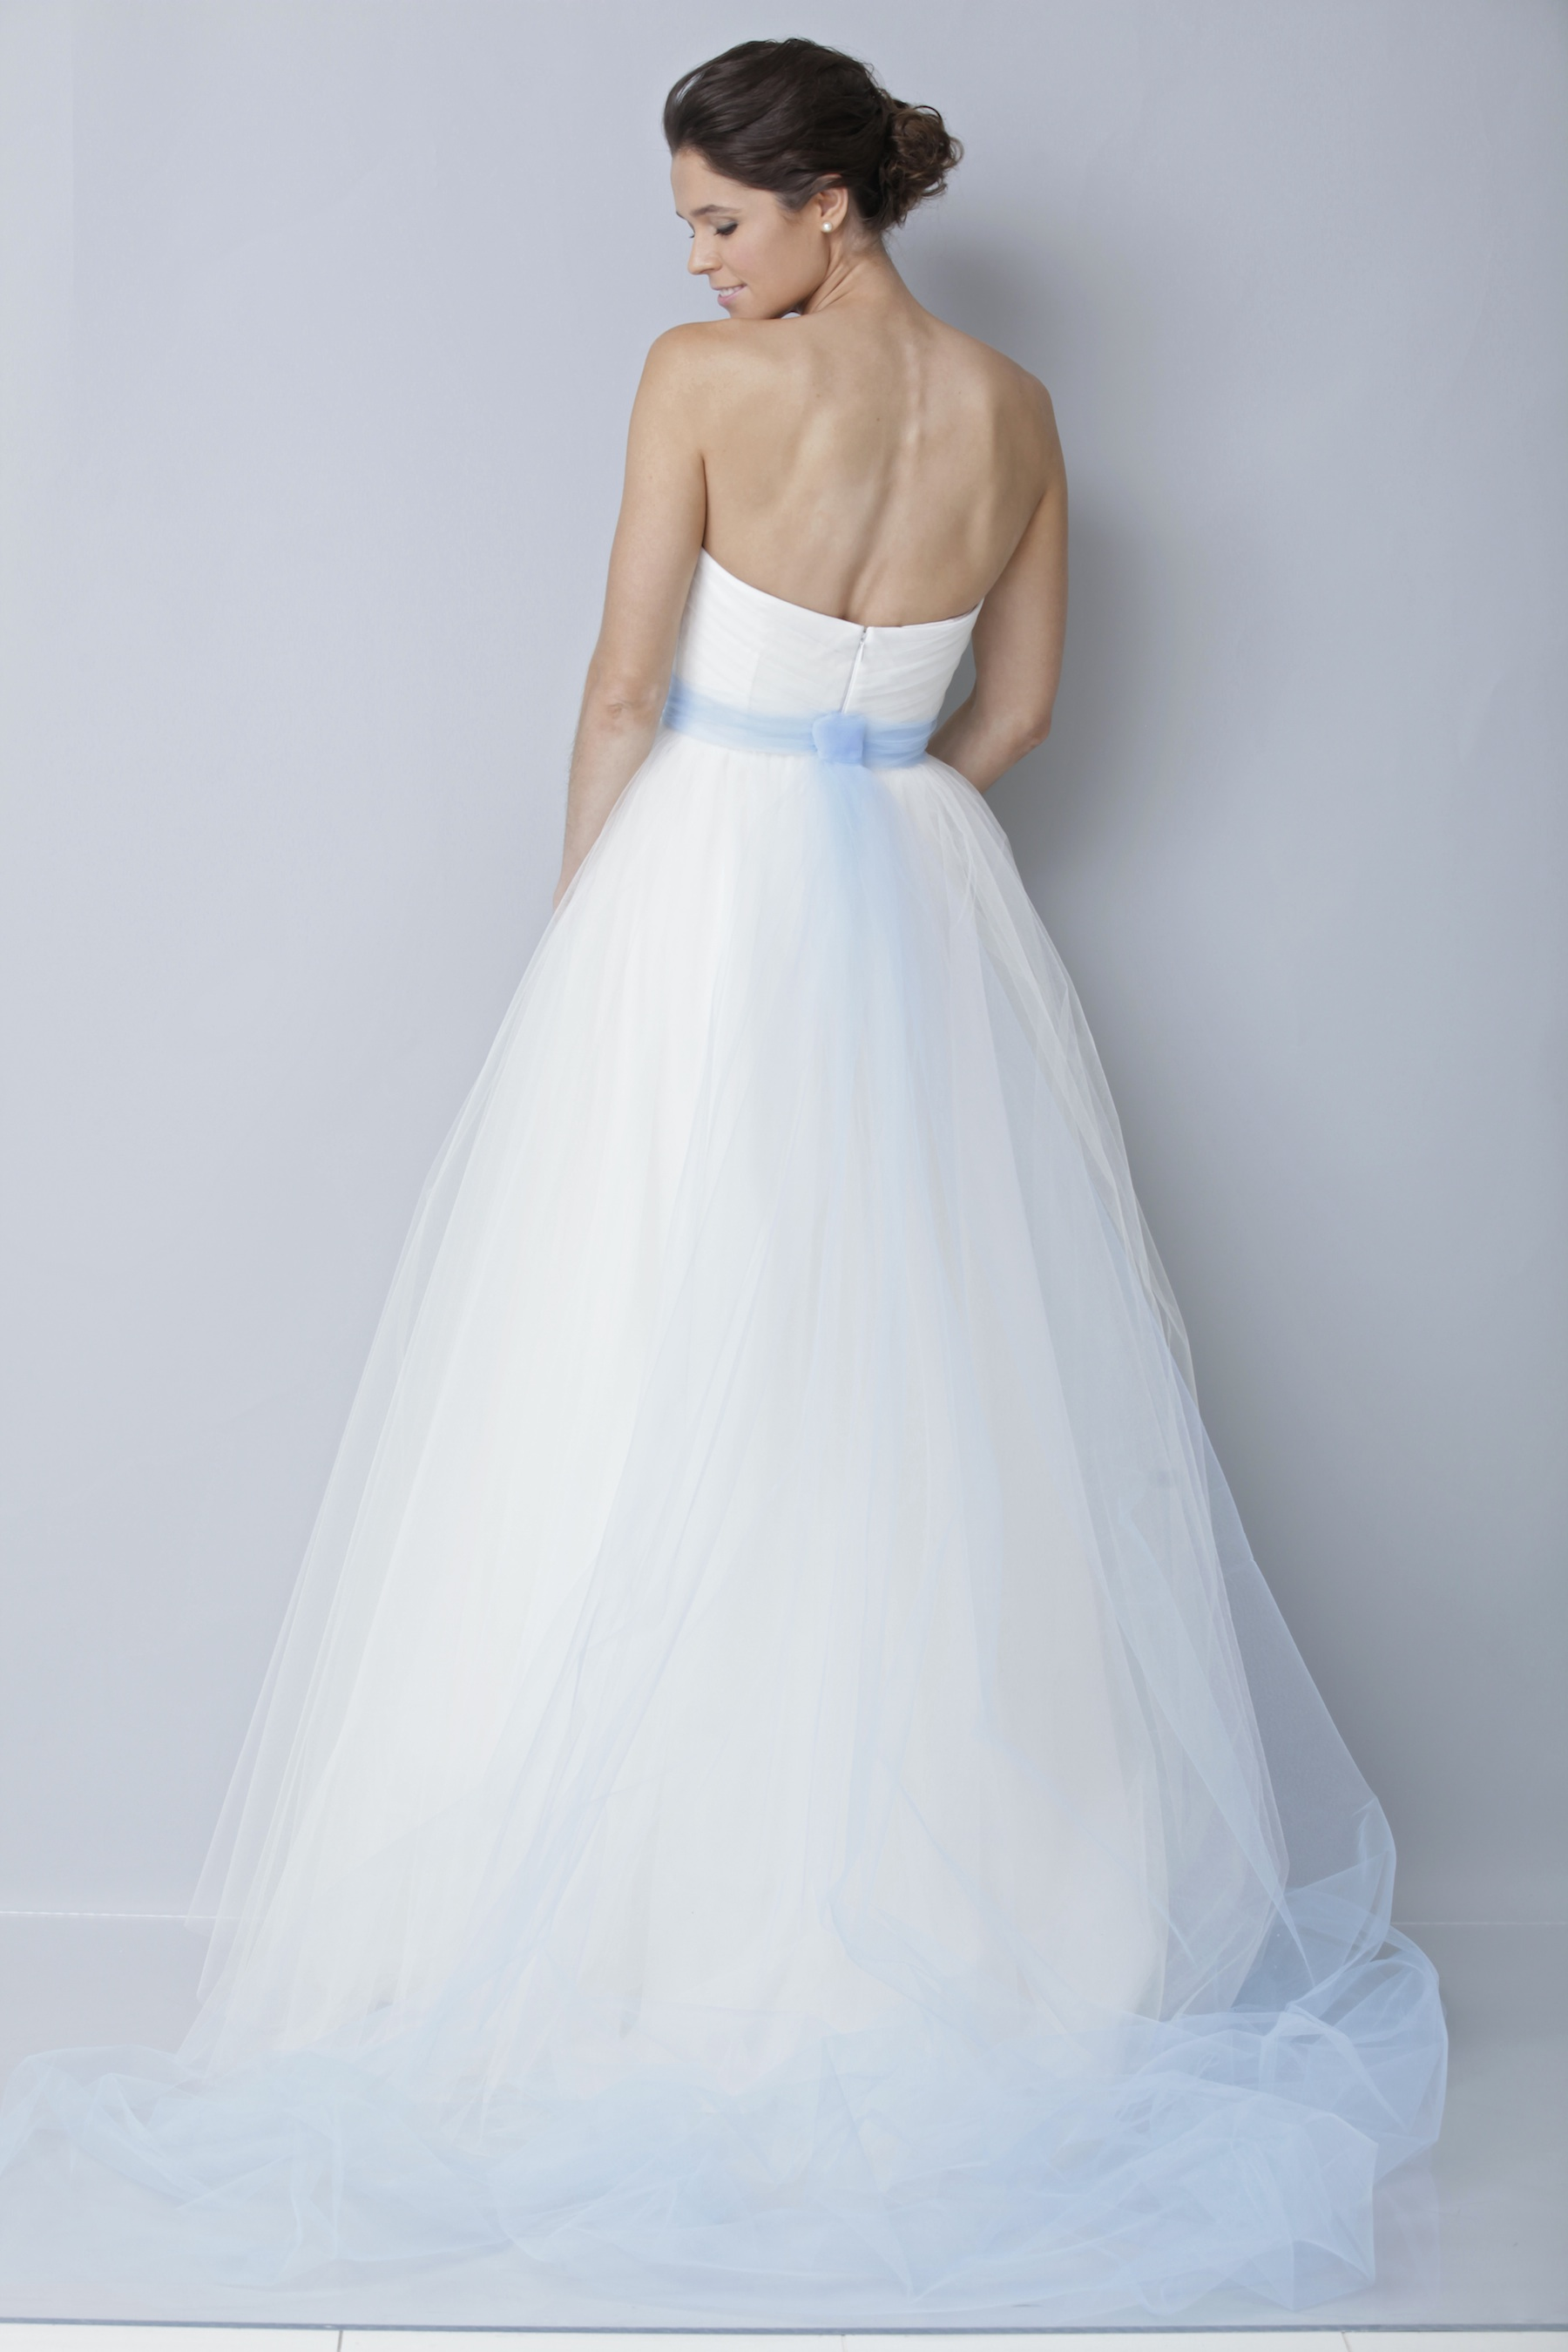 2013-wedding-dress-by-theia-bridal-gowns-tulle-sky-blue-sash-b.original